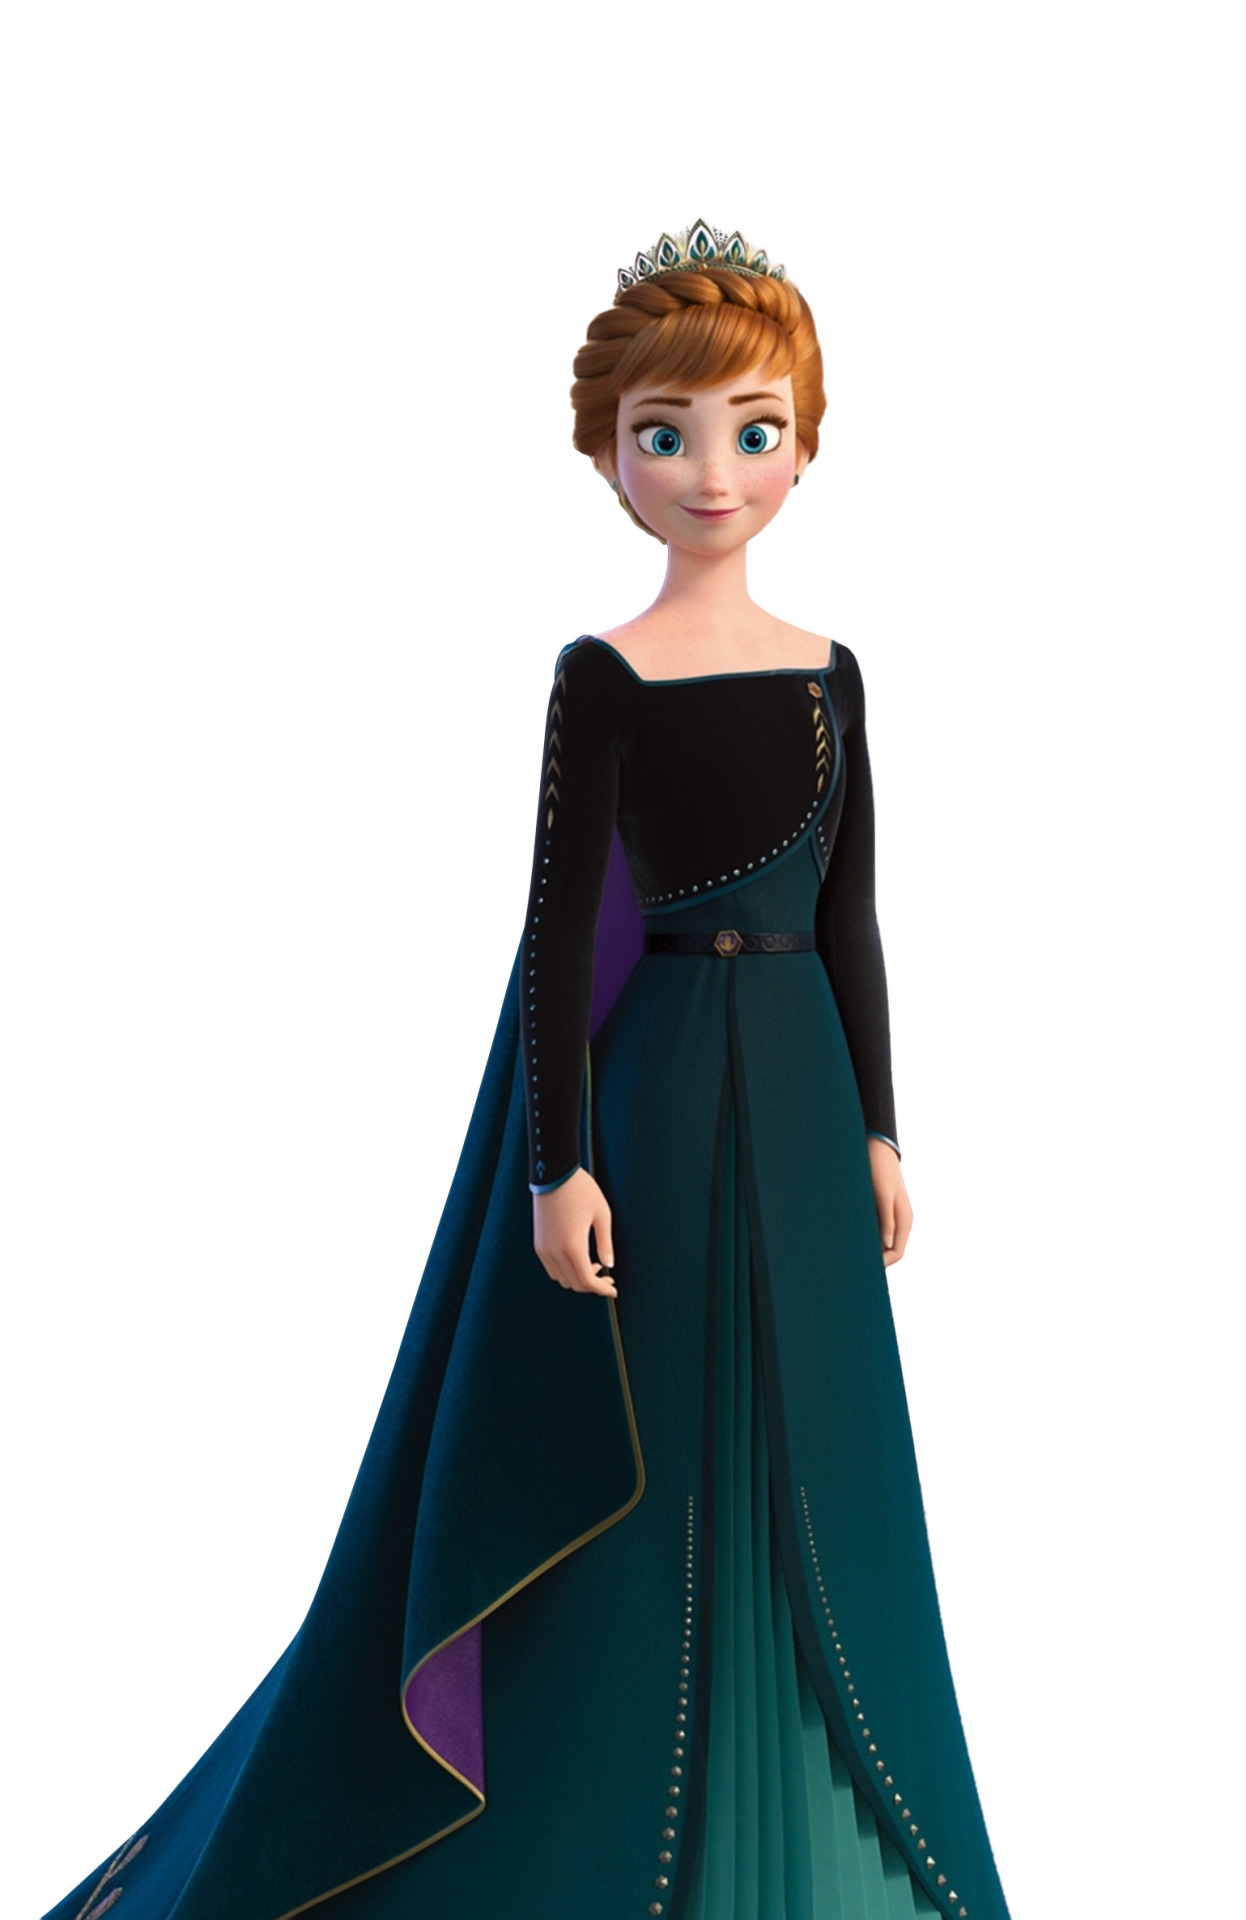 New Hd Images Of Frozen 2 Anna Queen Of Arendelle With Kristoff